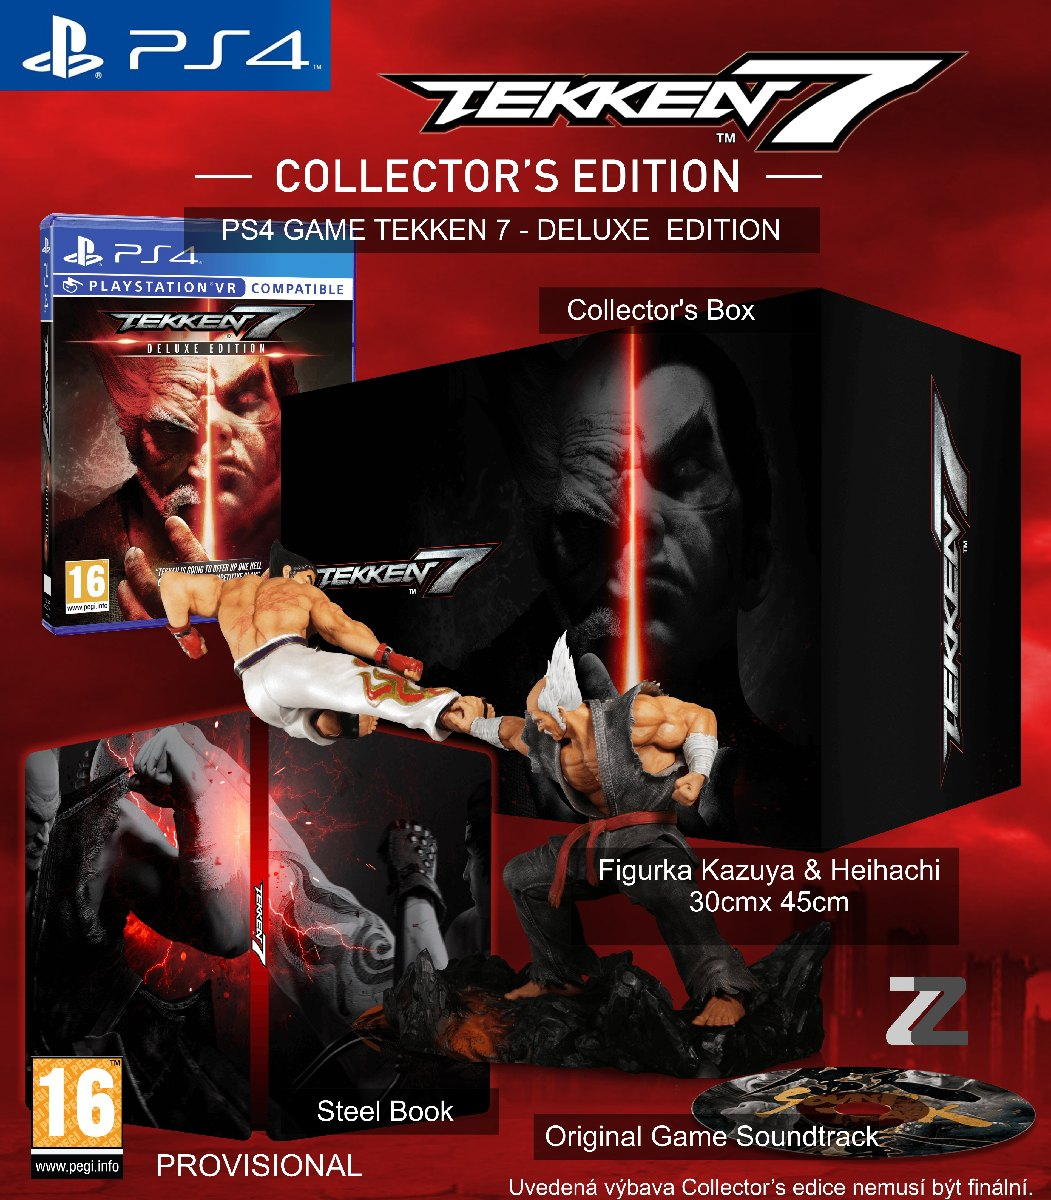 TEKKEN 7 (Collector's Edition) - PS4